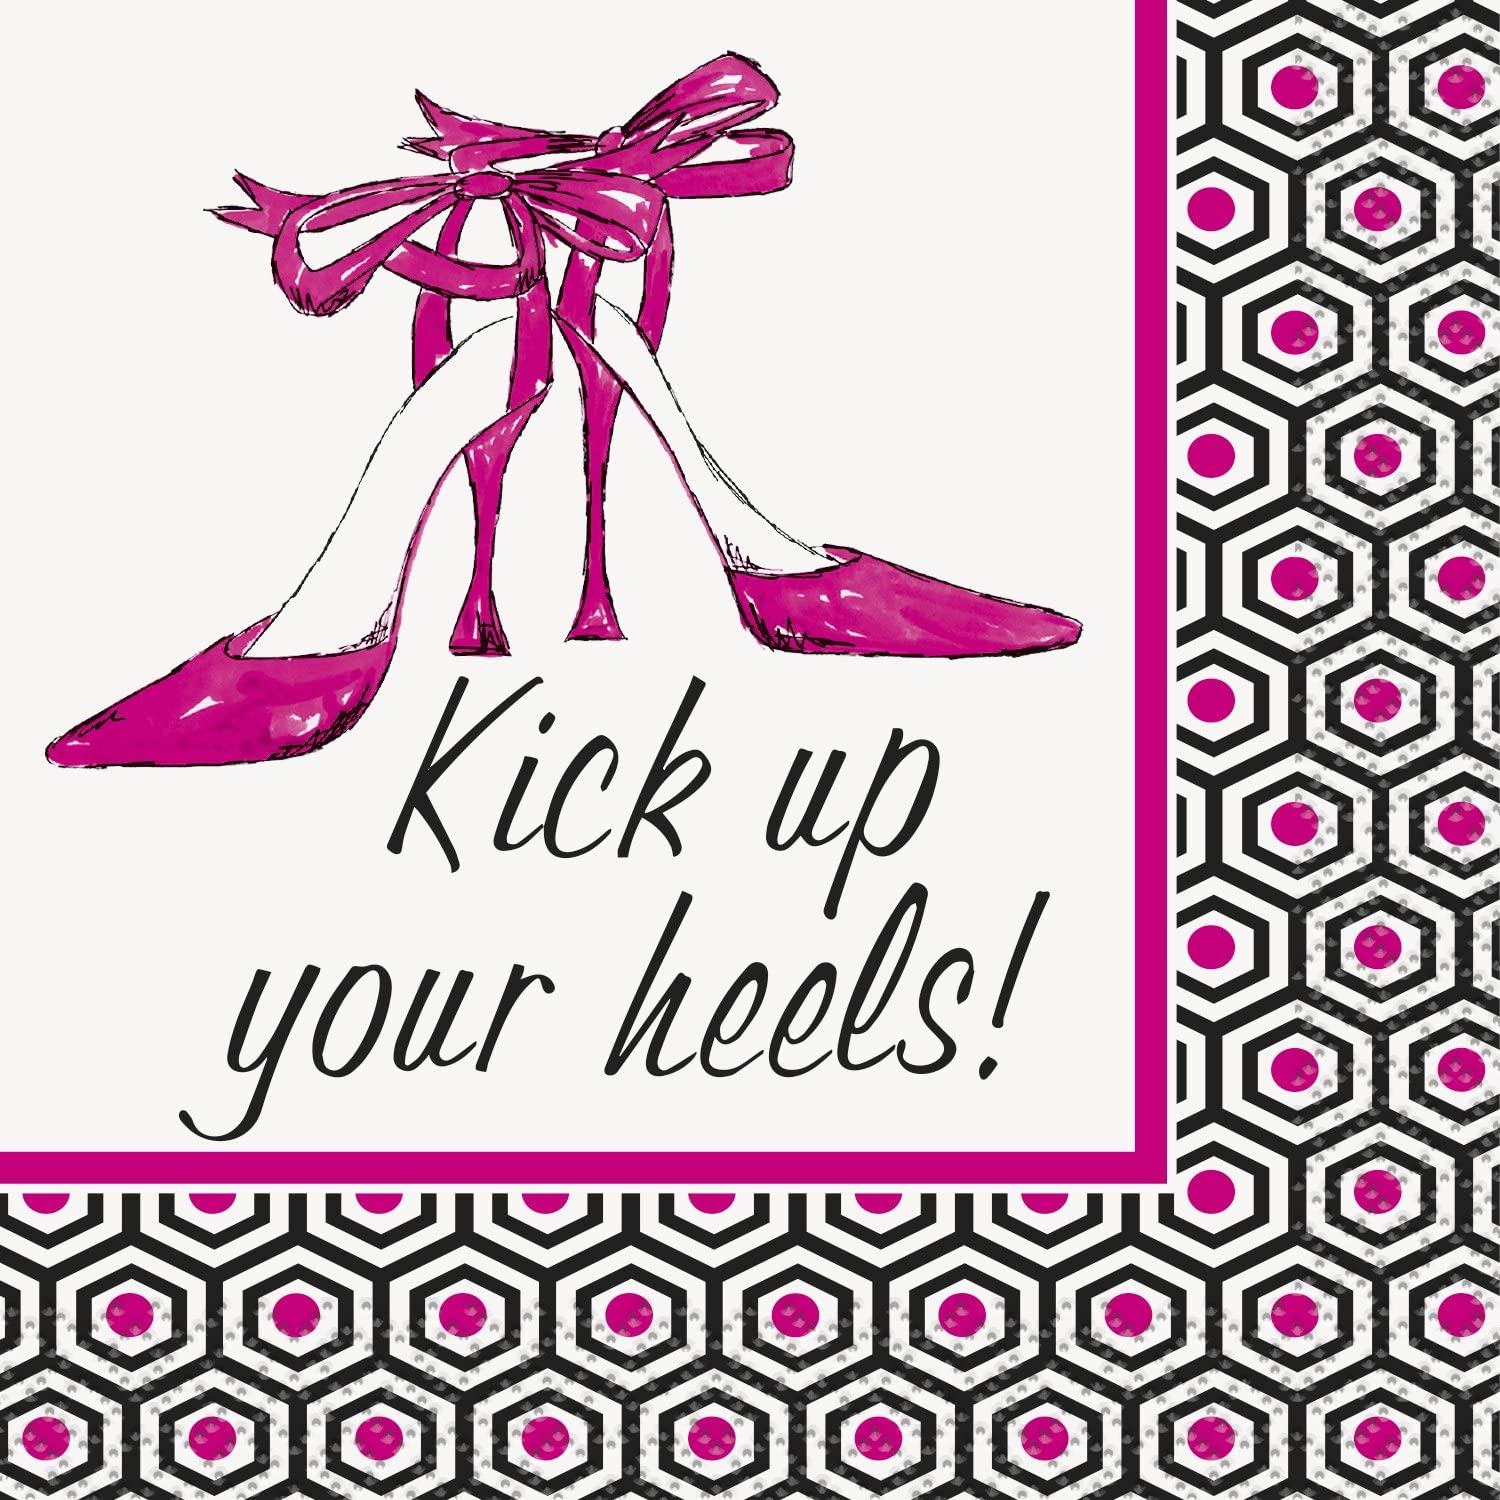 Kick Up Your Heels Girls Night Out Cocktail Napkins, 16ct